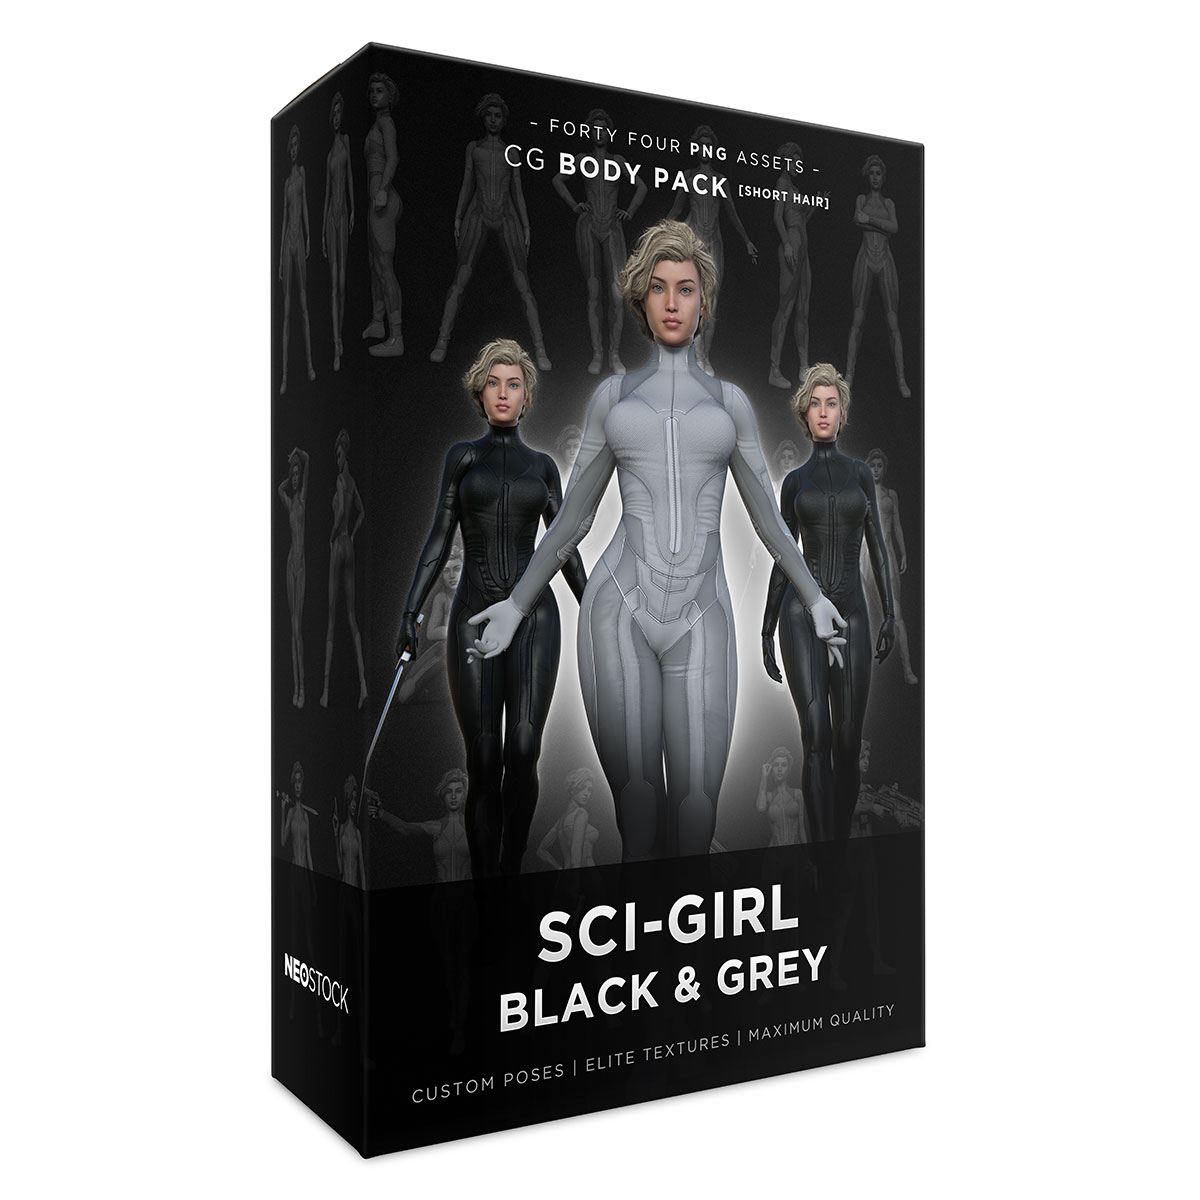 sci girl product box sales